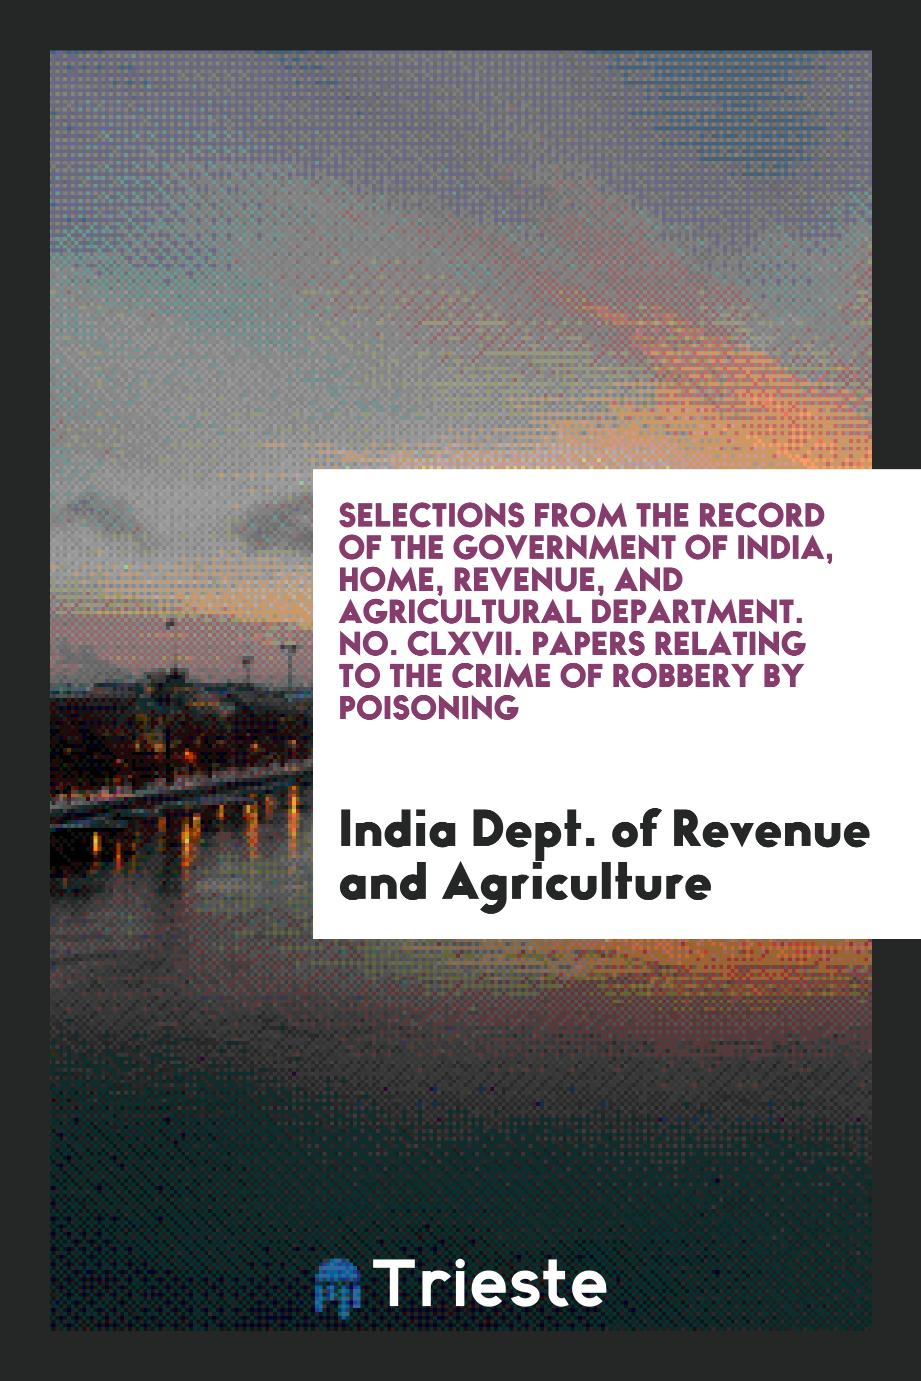 Selections from the Record of the Government of India, Home, Revenue, and Agricultural Department. No. CLXVII. Papers Relating to the Crime of Robbery by Poisoning